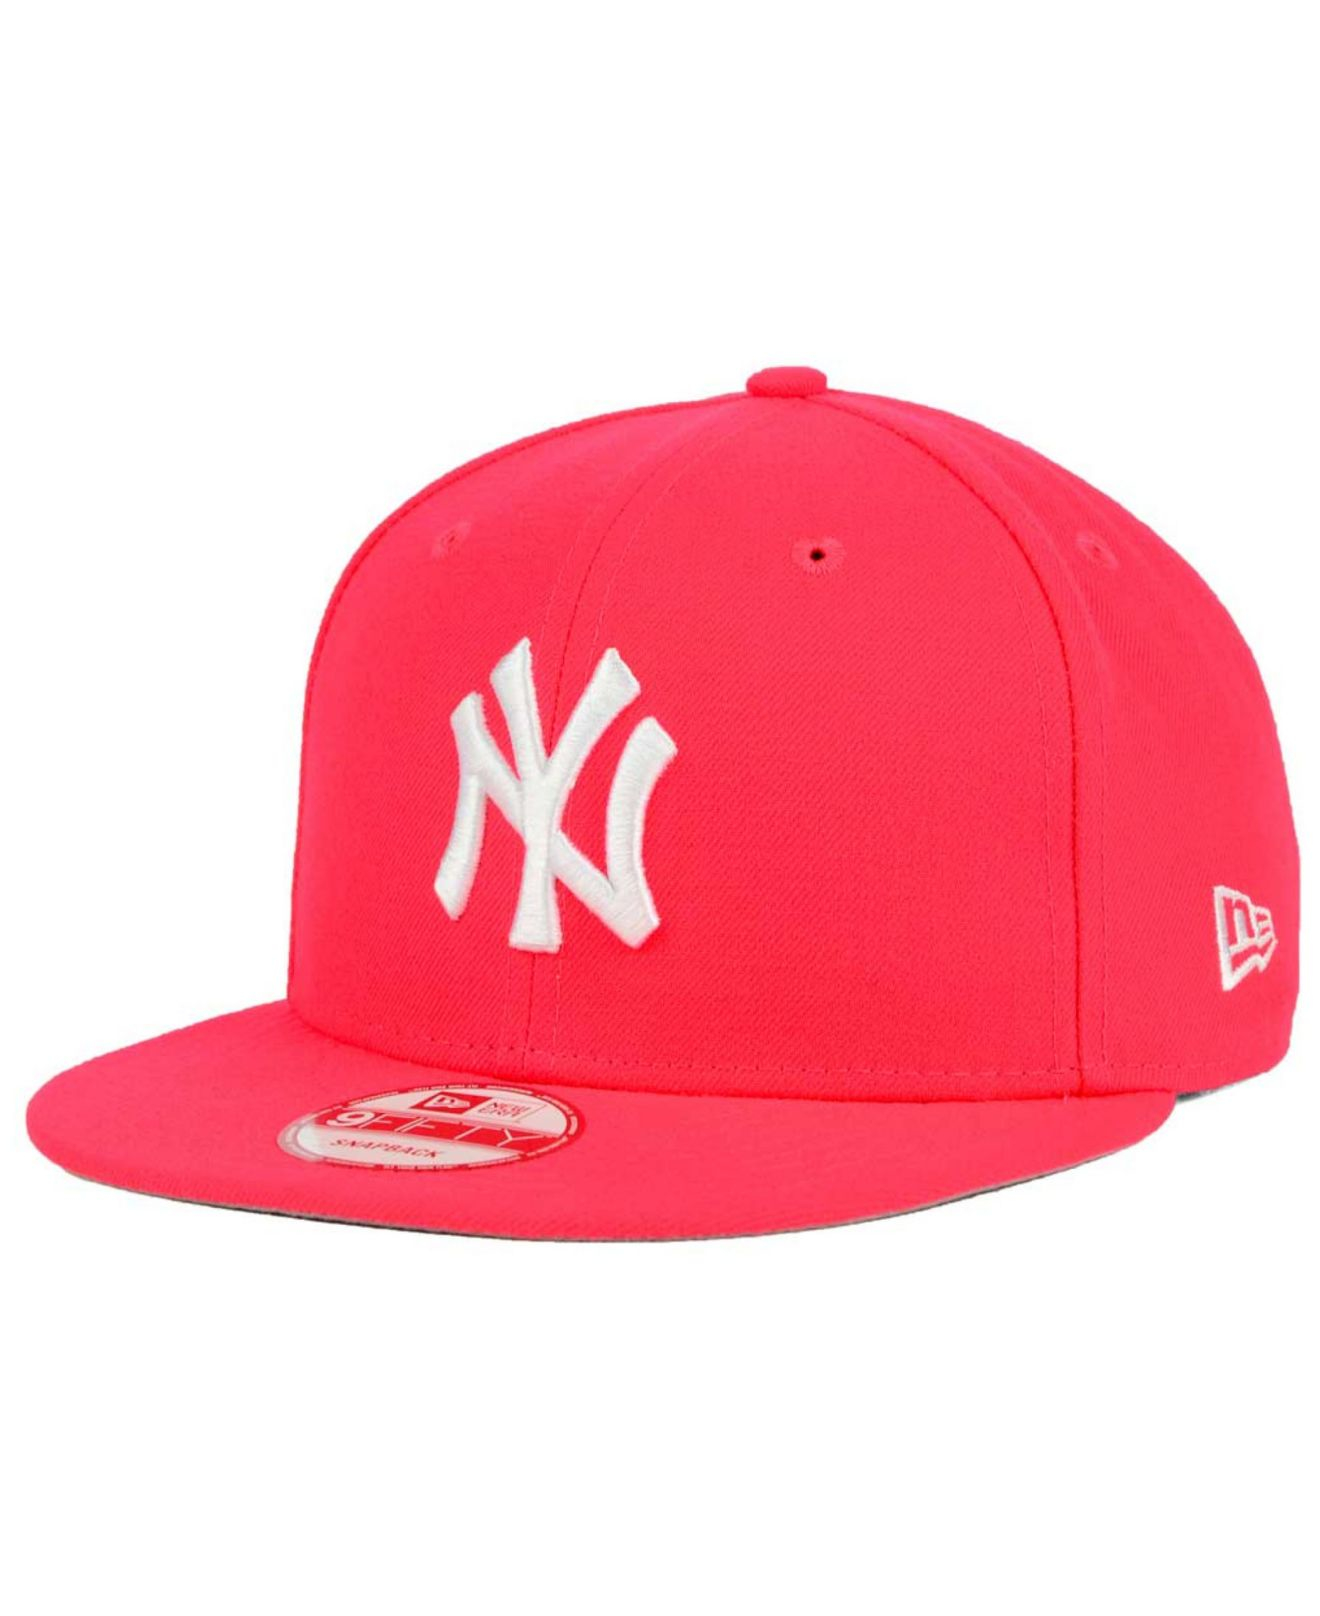 brand new 8cdea 55635 ... where can i buy lyst ktz new york yankees c dub 9fifty snapback cap in  pink